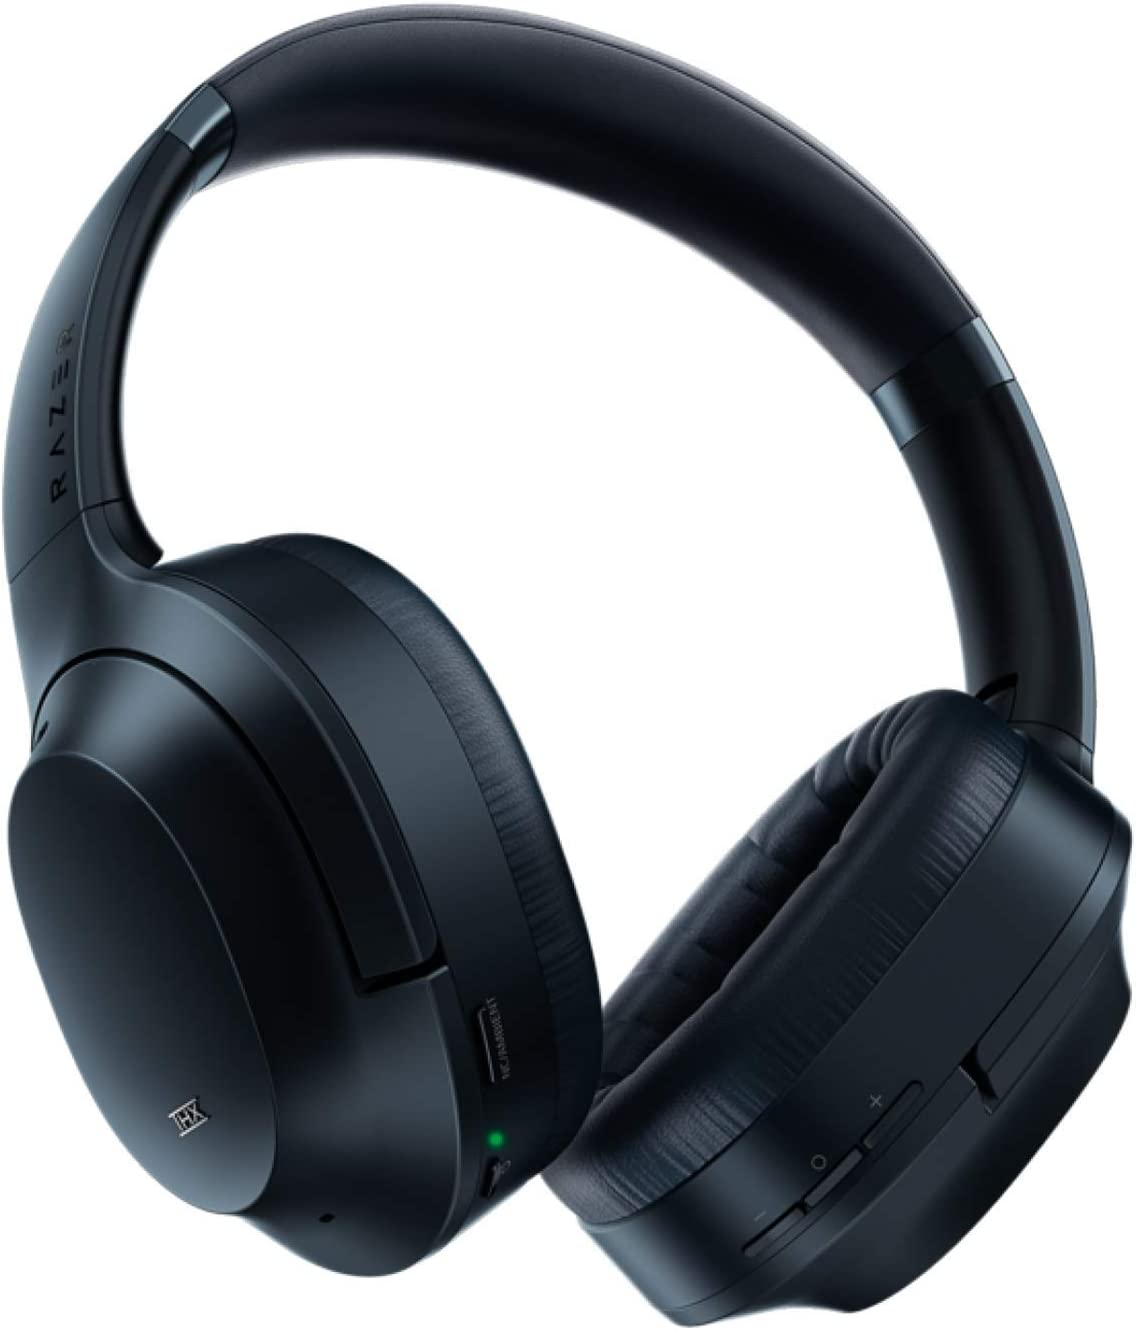 Razer Opus Active Noise Cancelling ANC Wireless Headphones: THX Audio Tuning - 25 Hr Battery - Bluetooth 4.2 & 3.5mm Jack Compatible - Auto Play/Auto Pause - Carrying Case Included - Midnight Blue